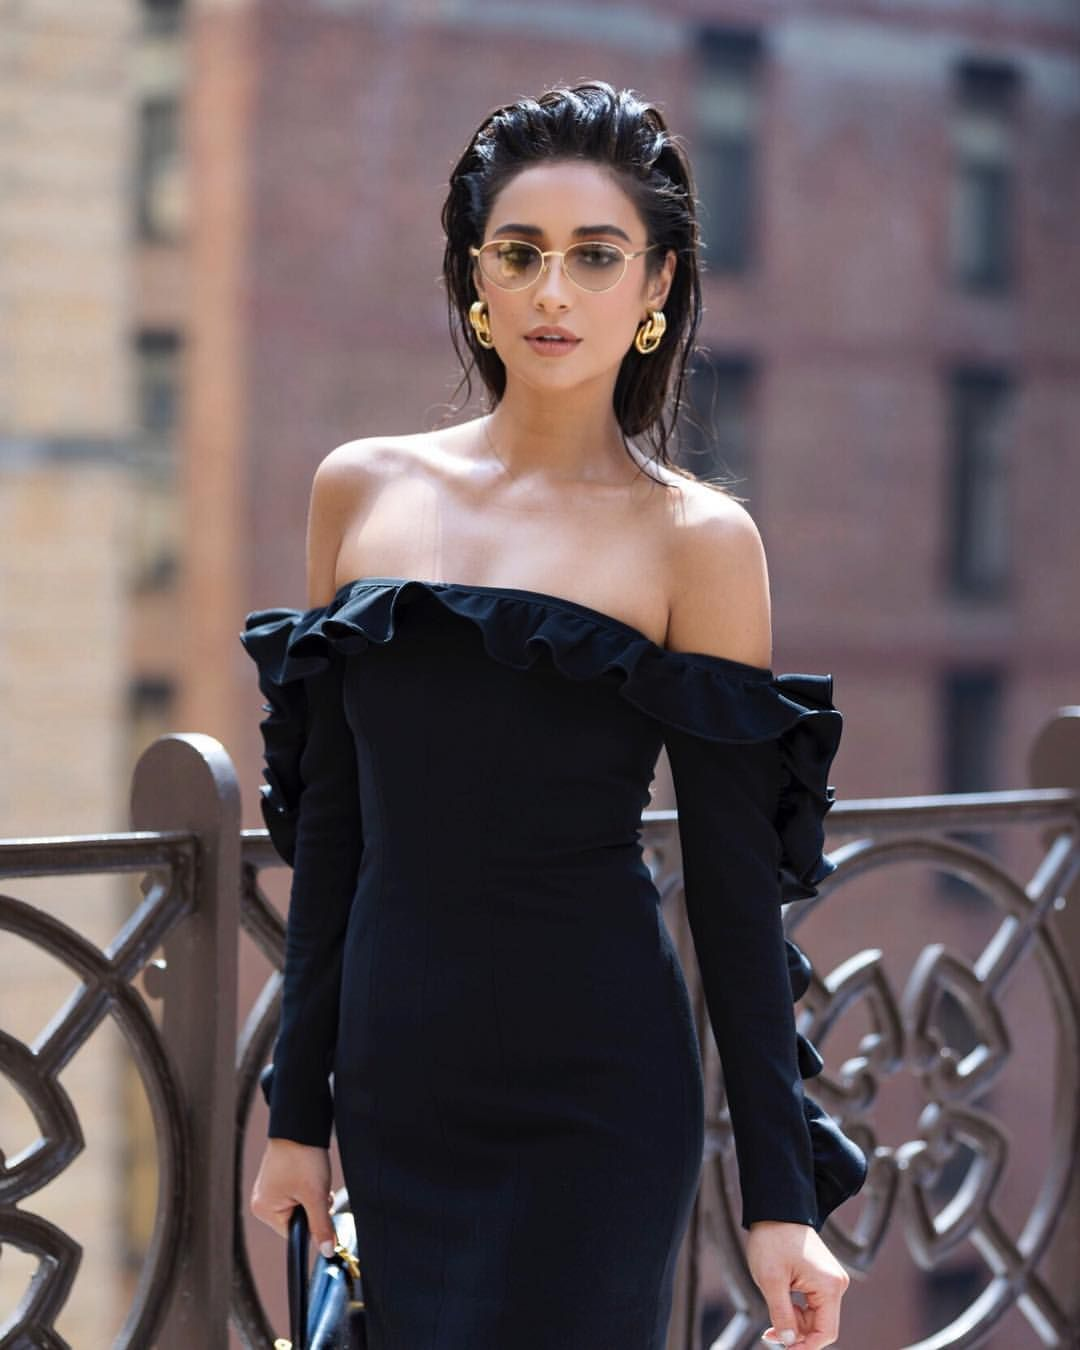 Pin By Shay On Hallway In 2019: Pin By Cori Tsurumaki On Shay Mitchell In 2019